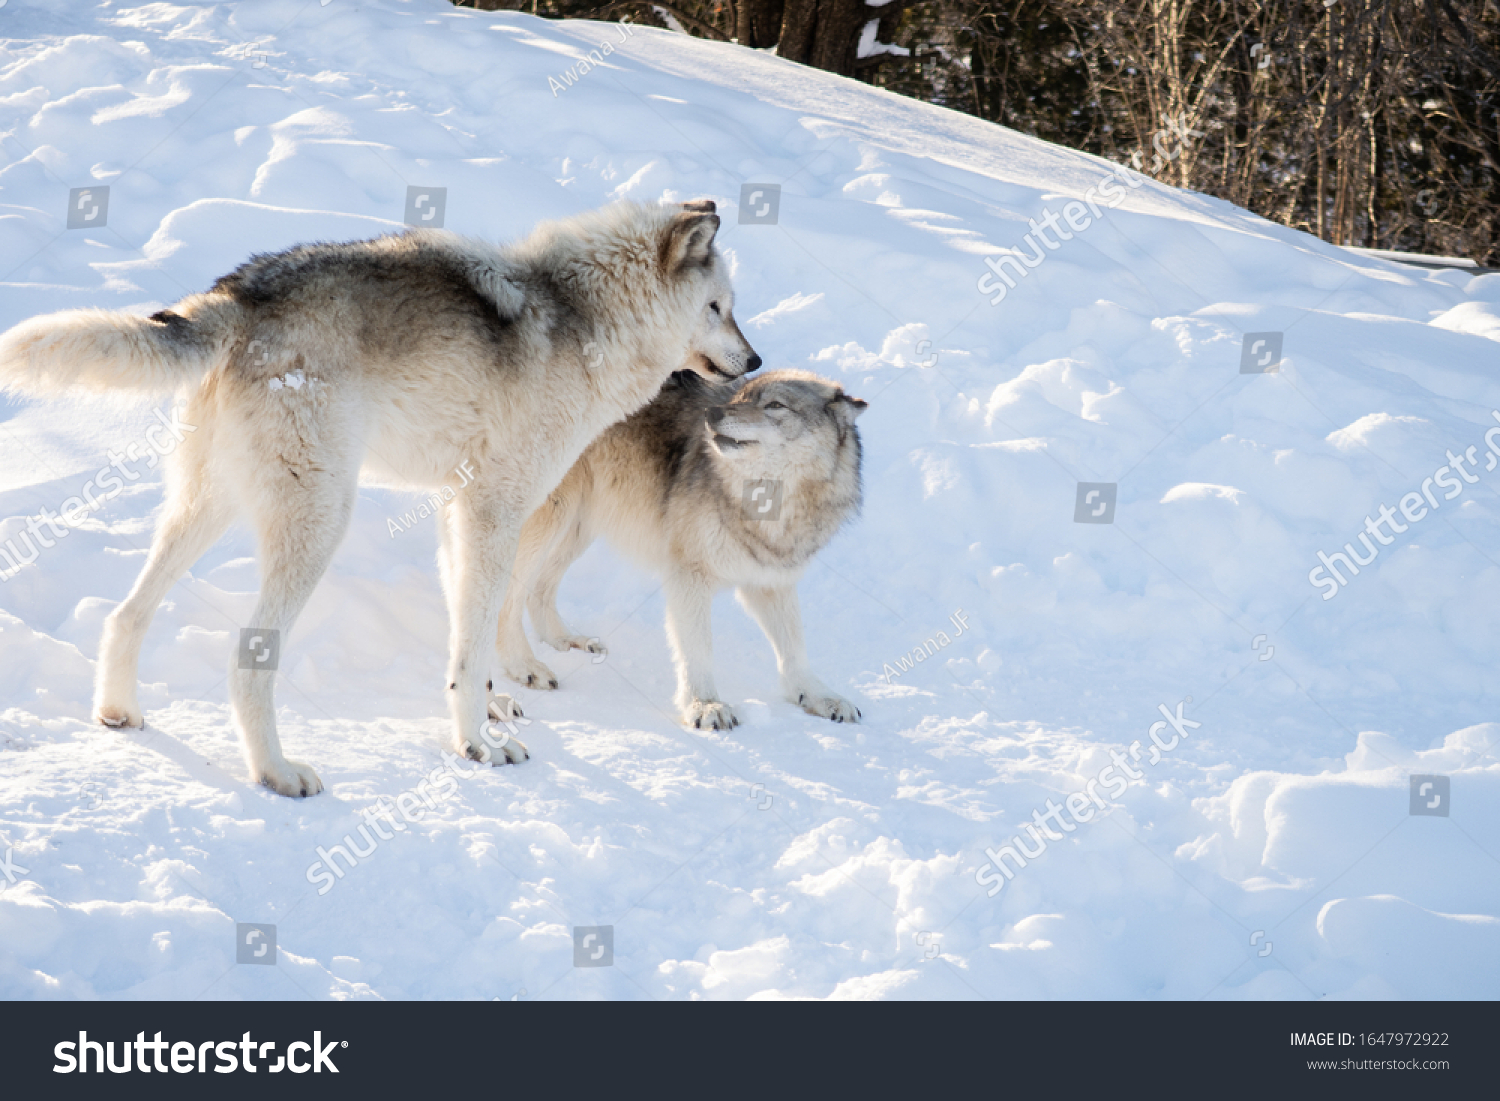 stock-photo-two-common-grey-wolves-playi